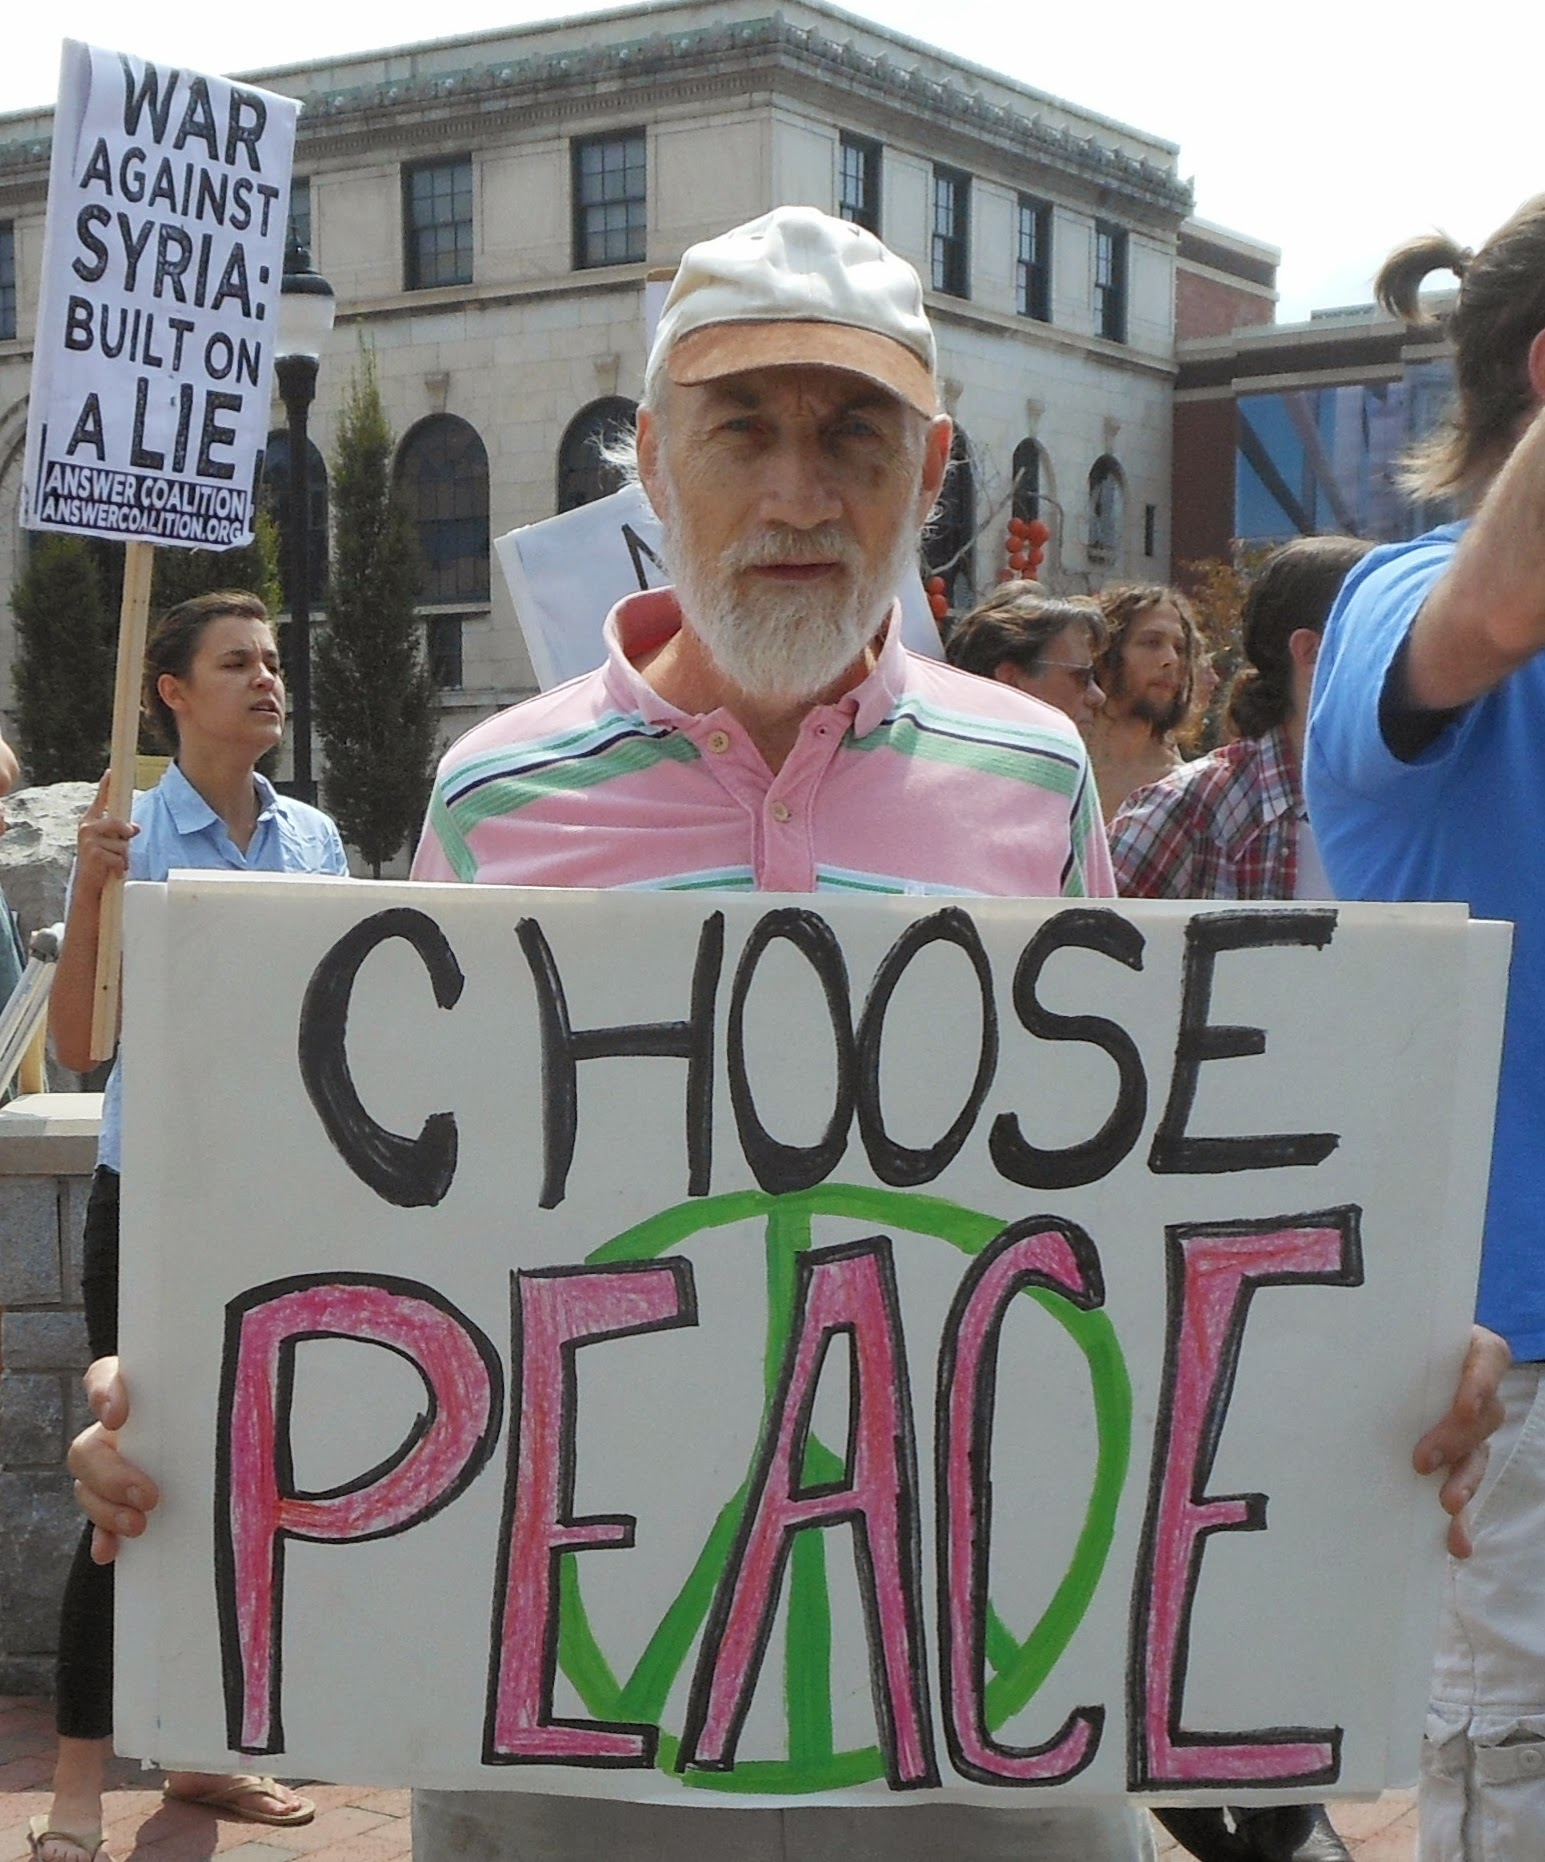 Jim-Choose-PEACE